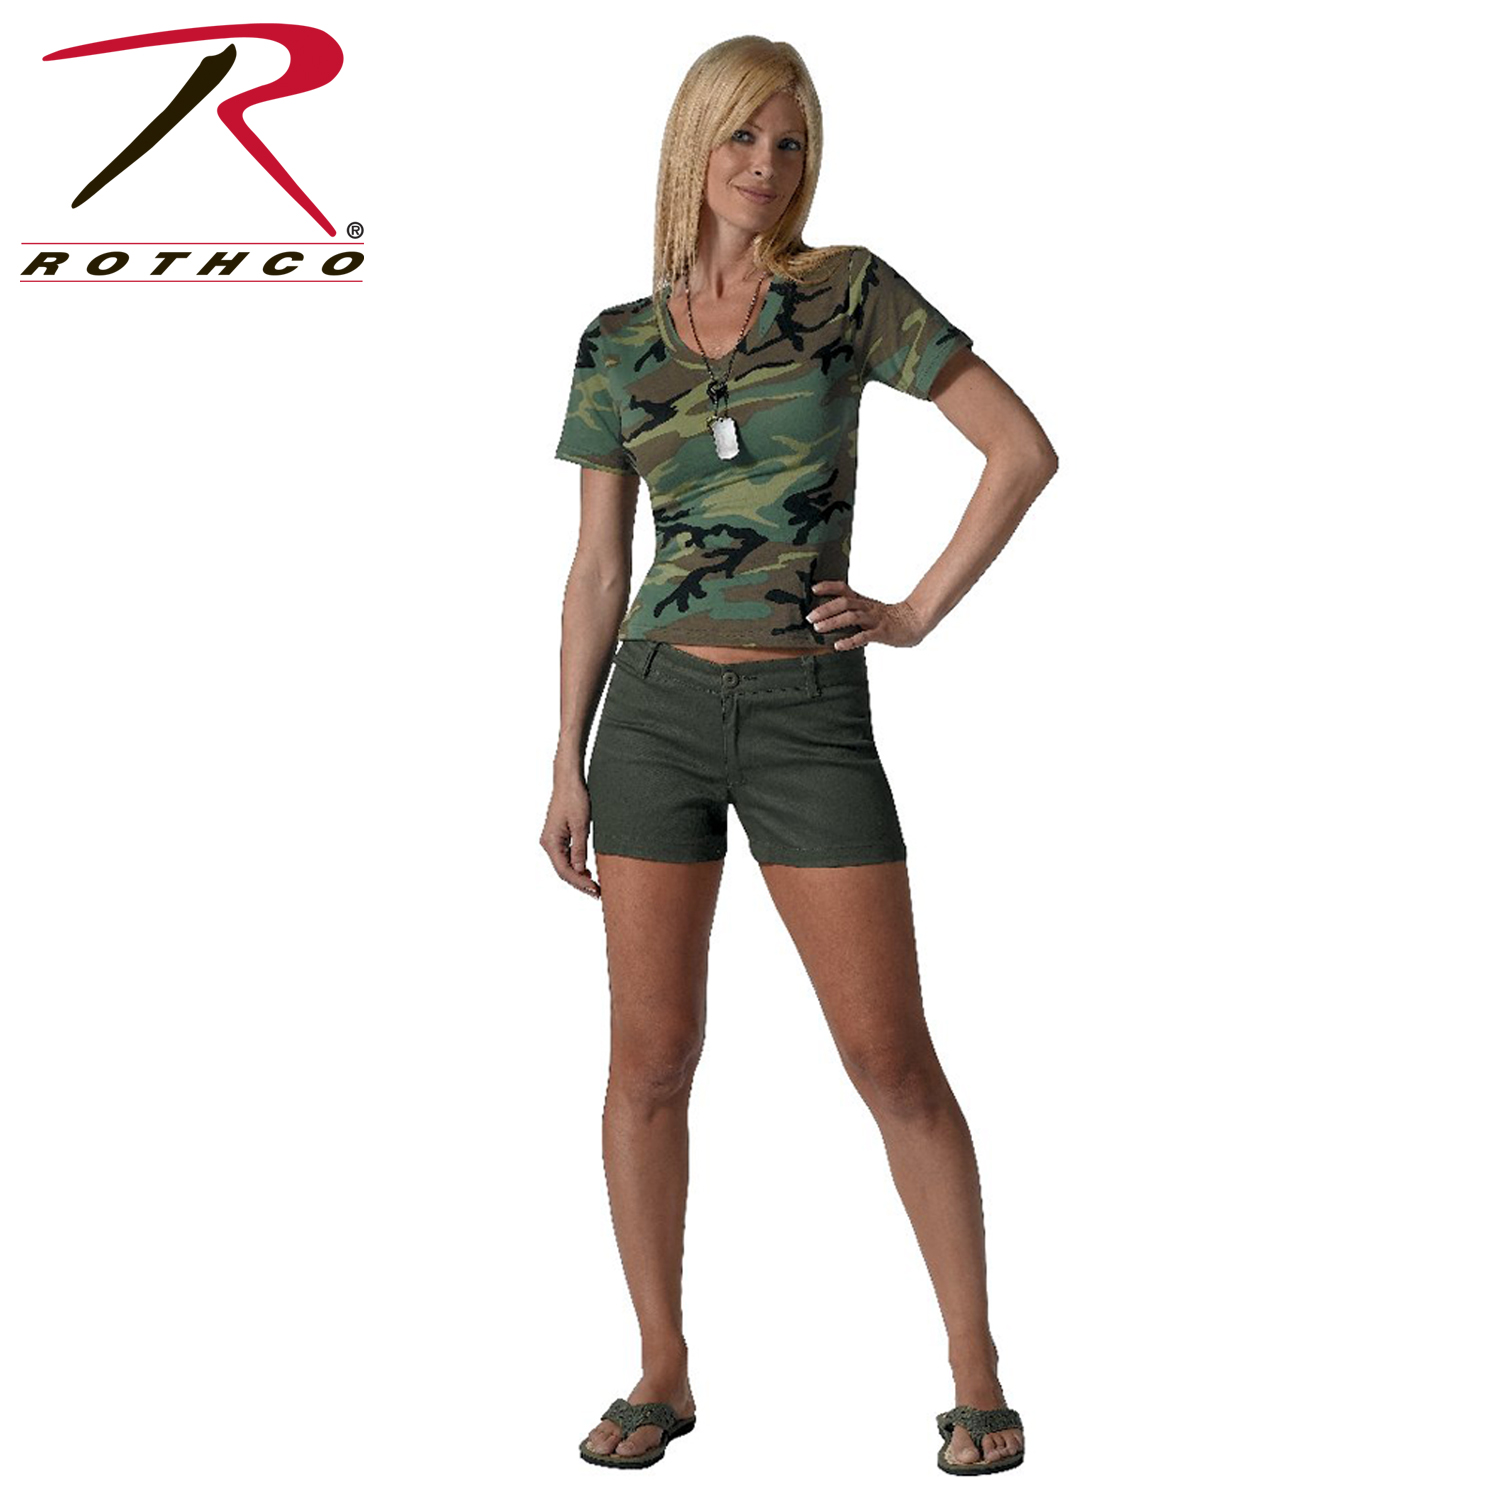 Women's Camo Shirts on Pinterest | Women's Oxford Shirts, Women's